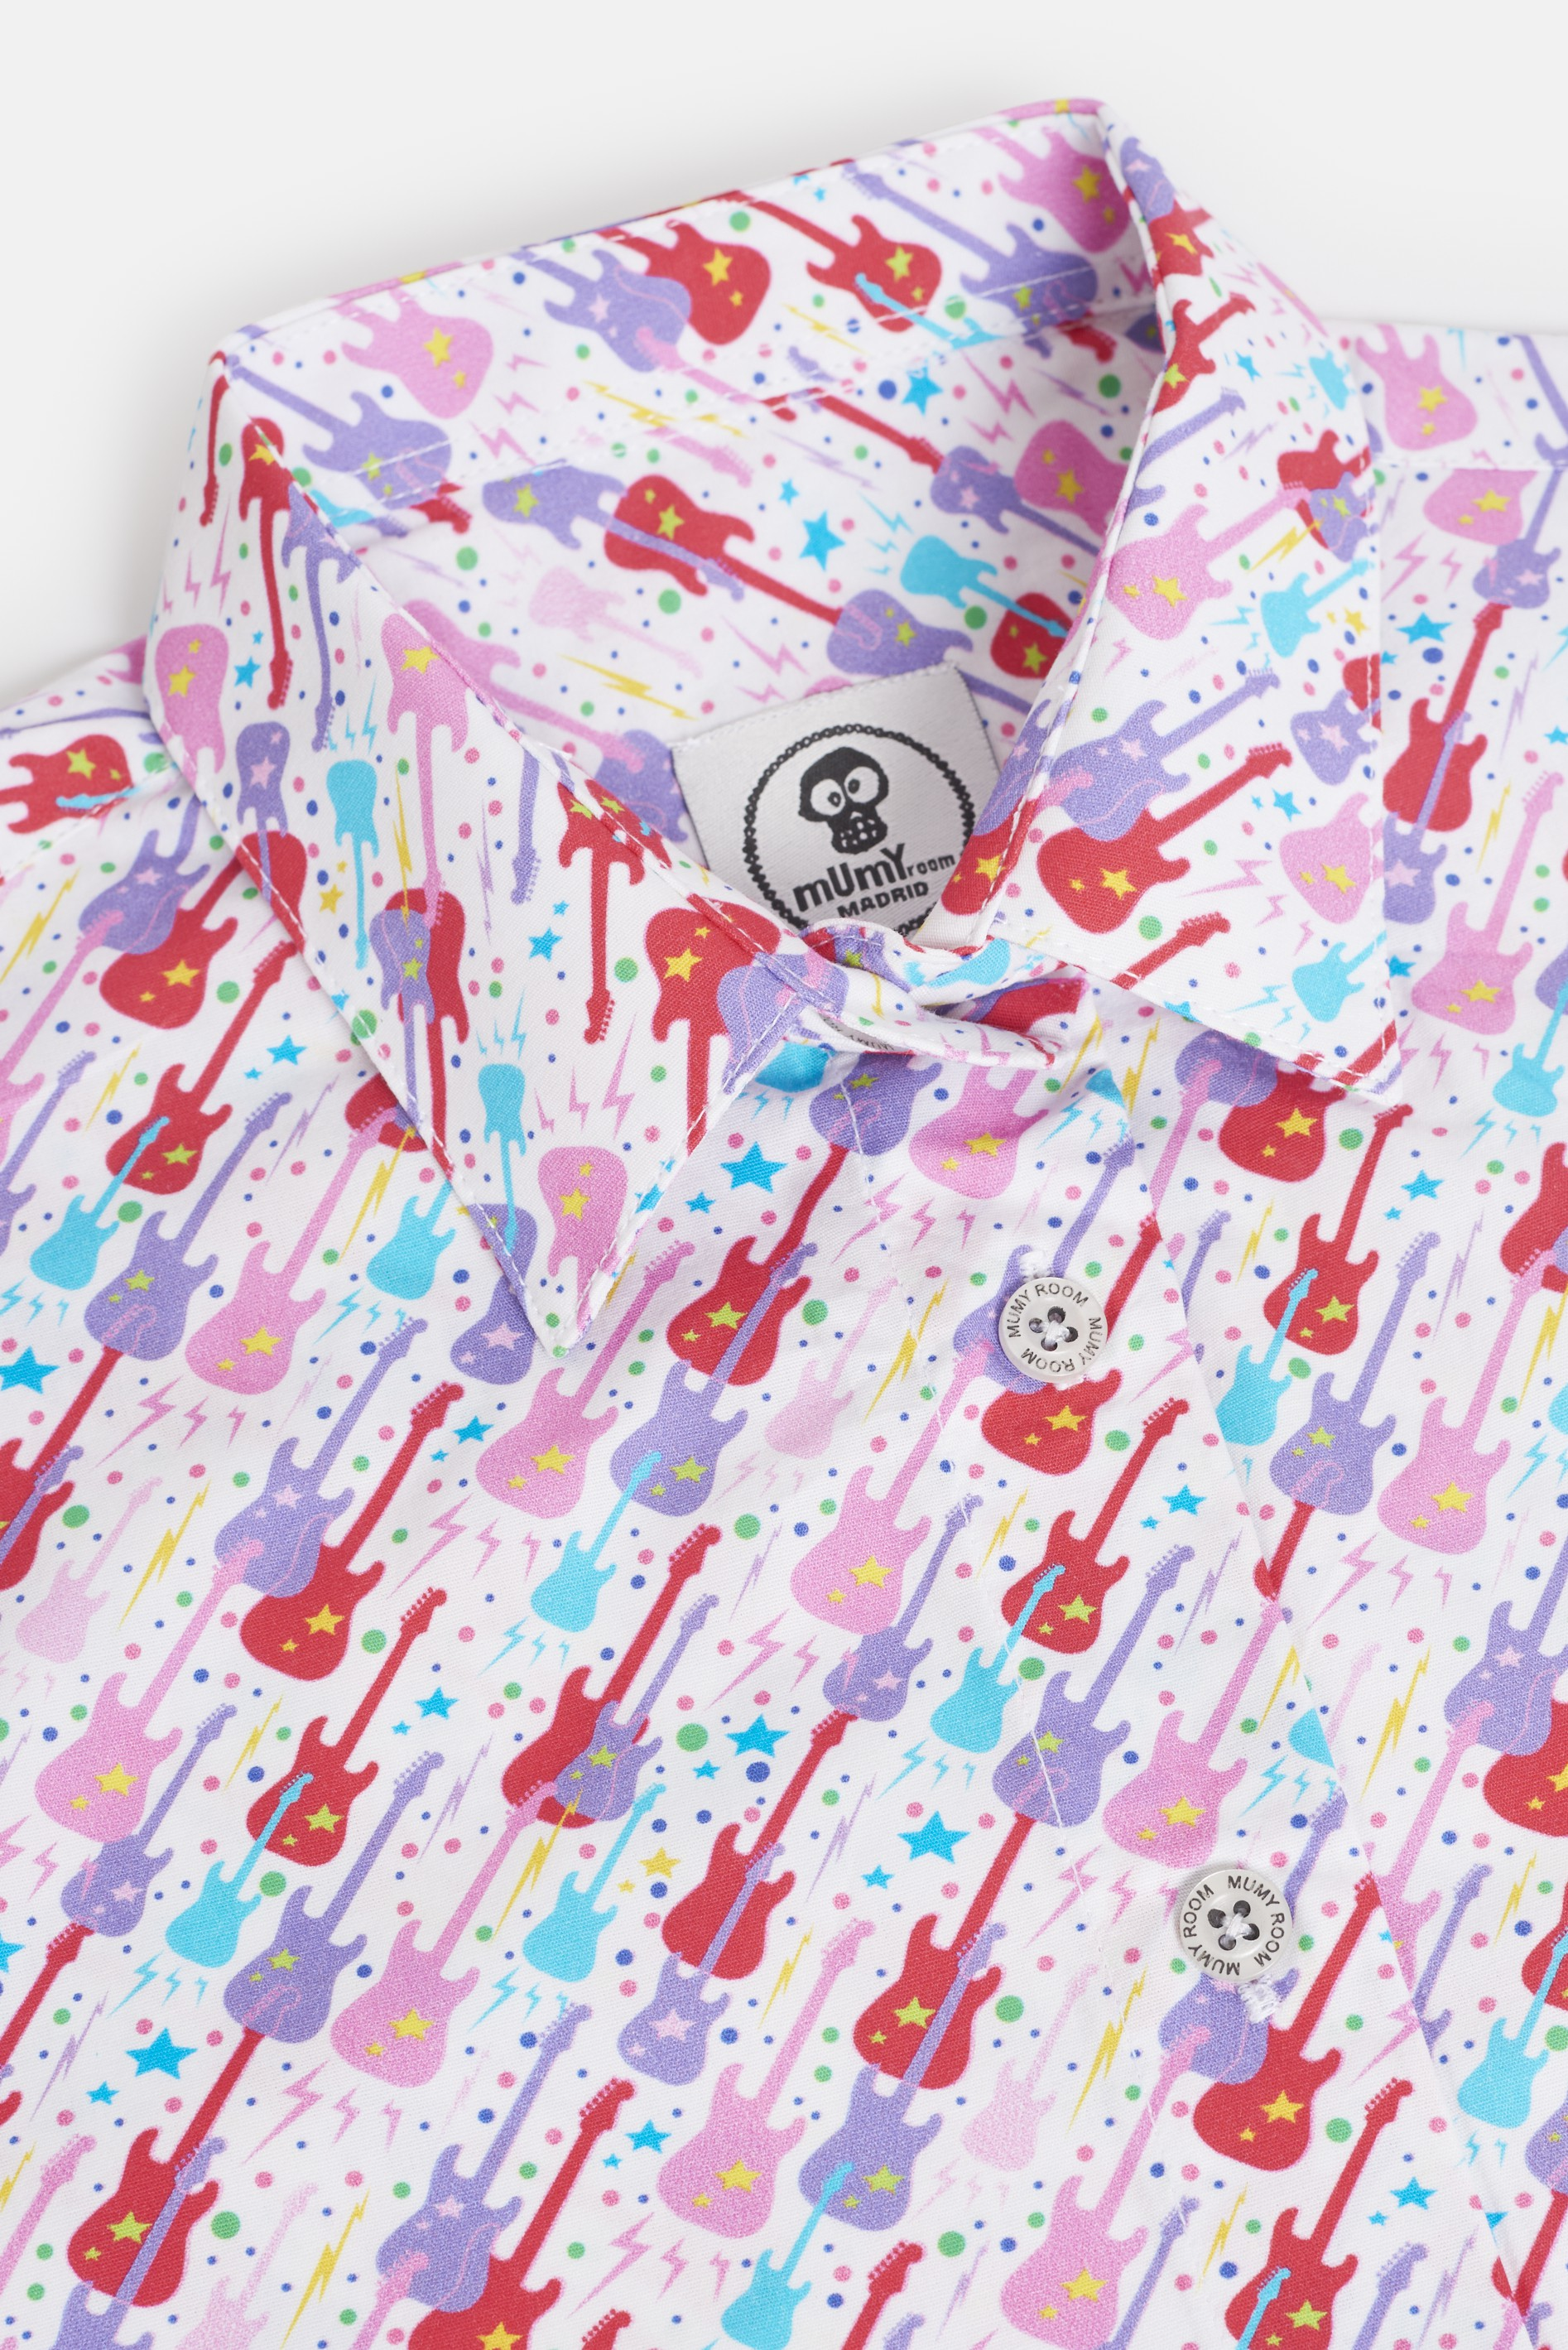 WOMEN'S PRINTED SHIRT UMAMI LINE GUITARS COLORS